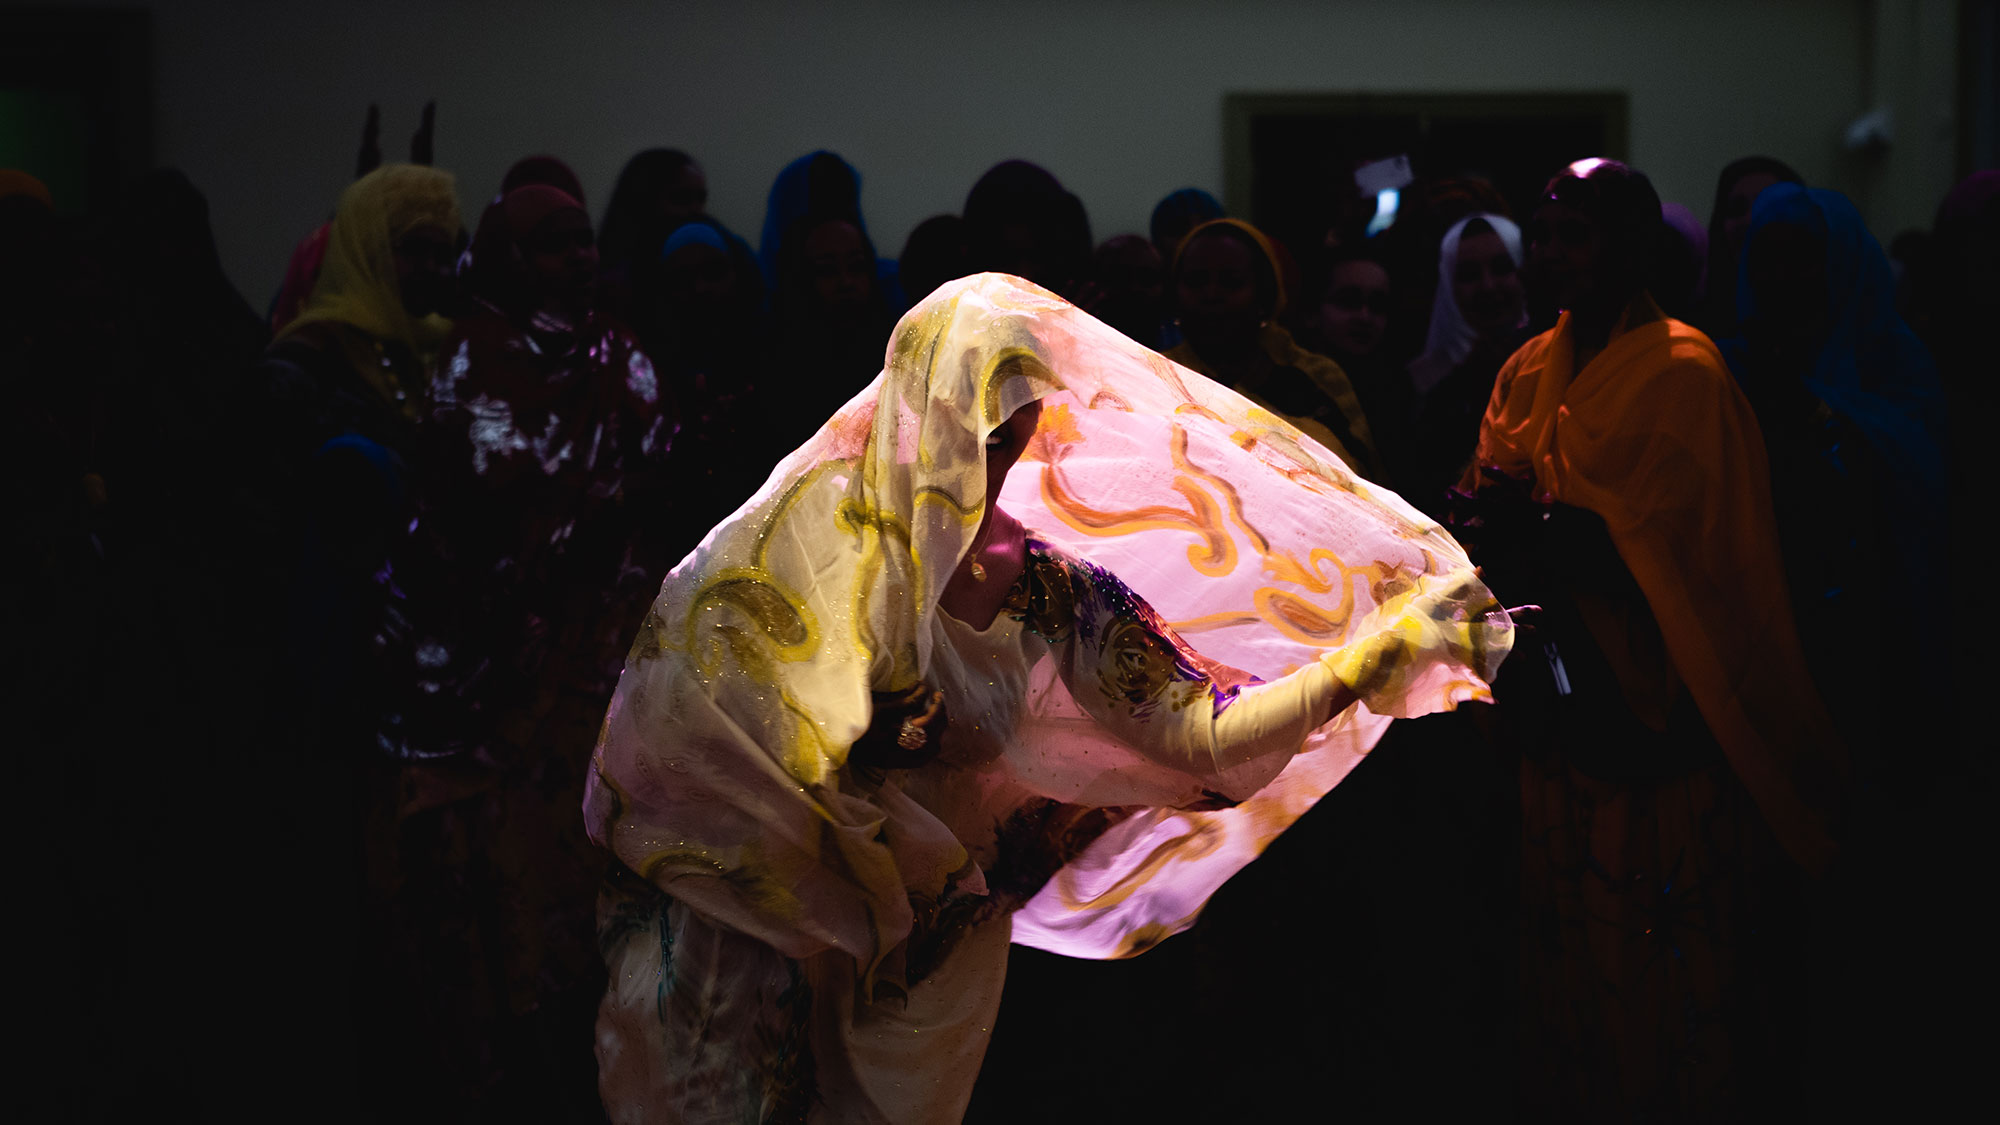 Somali woman dancing at wedding celebration by NYC photographer and videographer Elizabeth Mealey